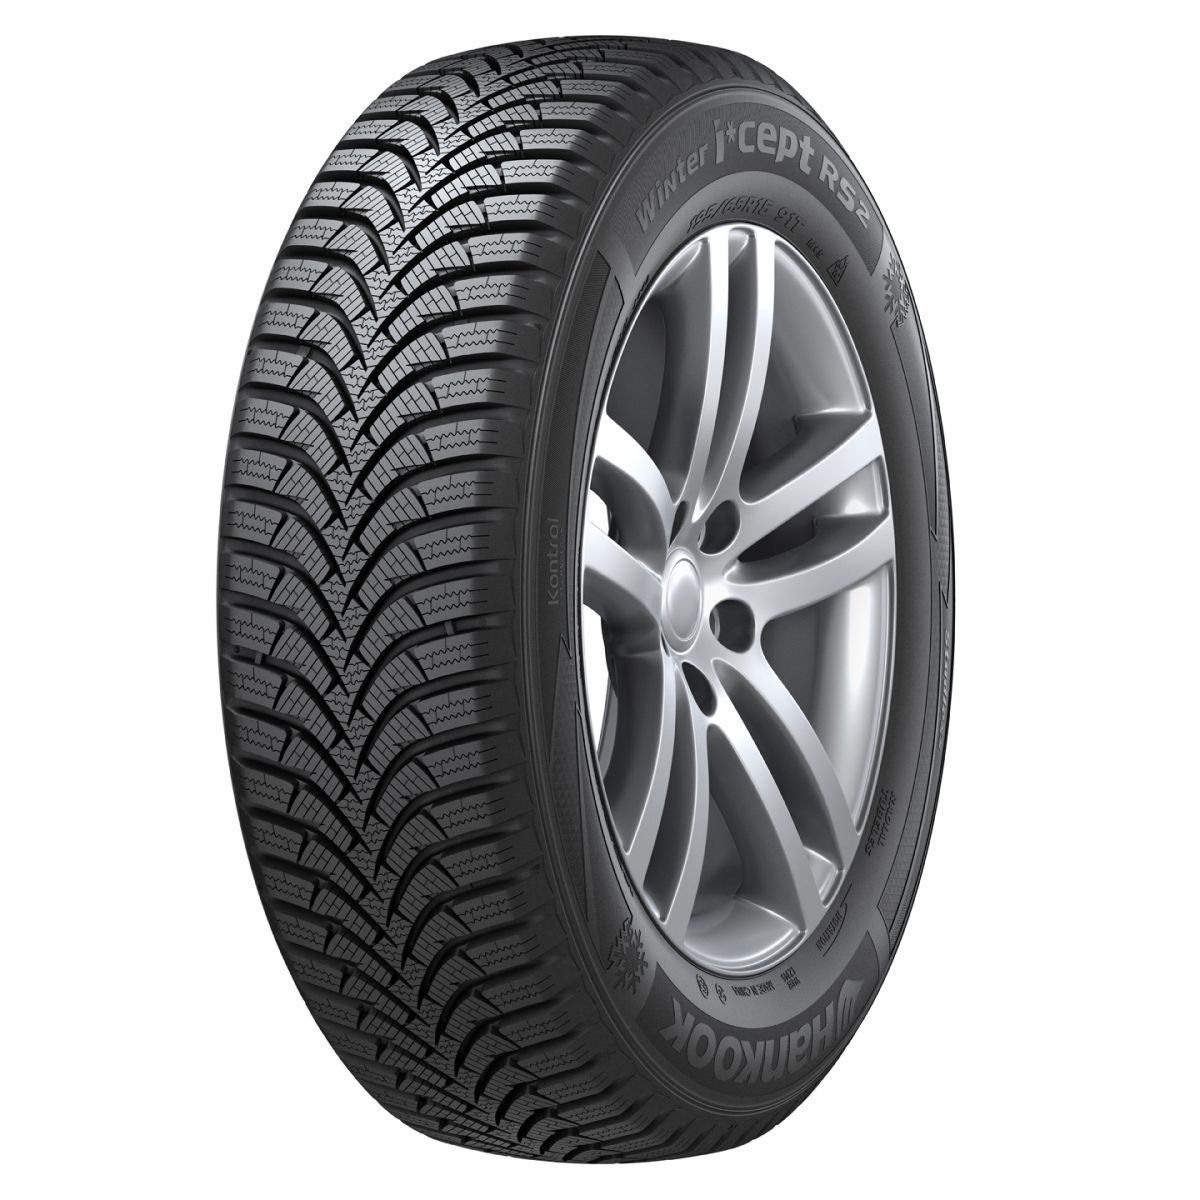 Hankook Winter I*Cept RS2 W452 175/65 R14 86T XL